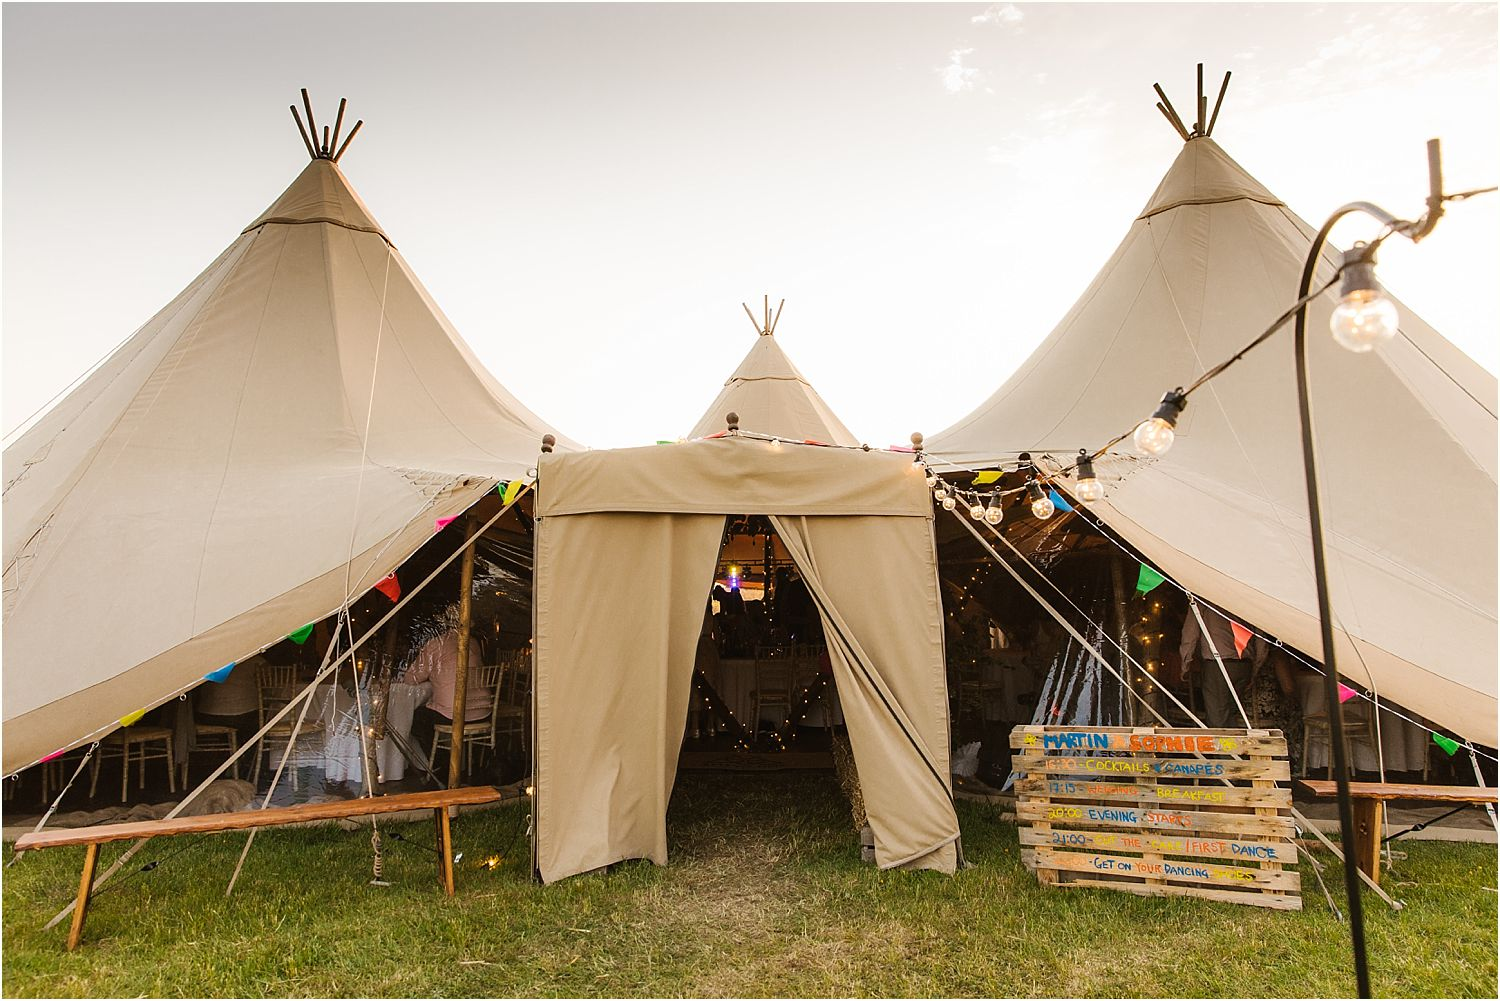 Lancashire farm Tipi wedding external view of tipi by Betty's Tipis of Chorley, Lancashire